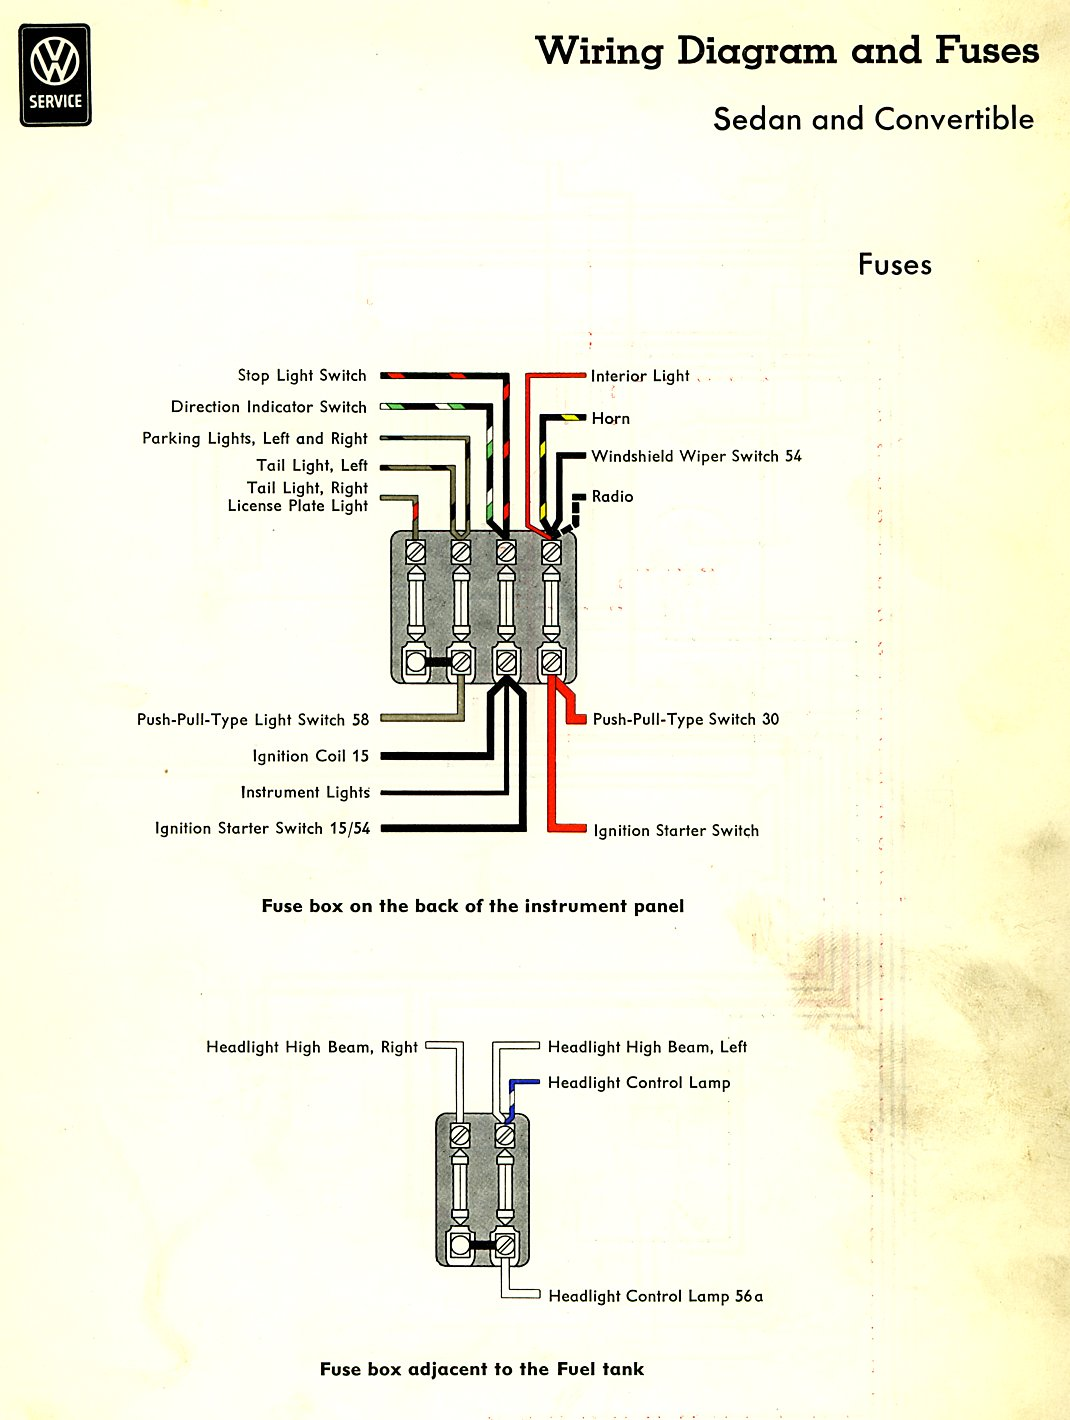 Bug Fuses on Vw Beetle Wiring Diagram 1962